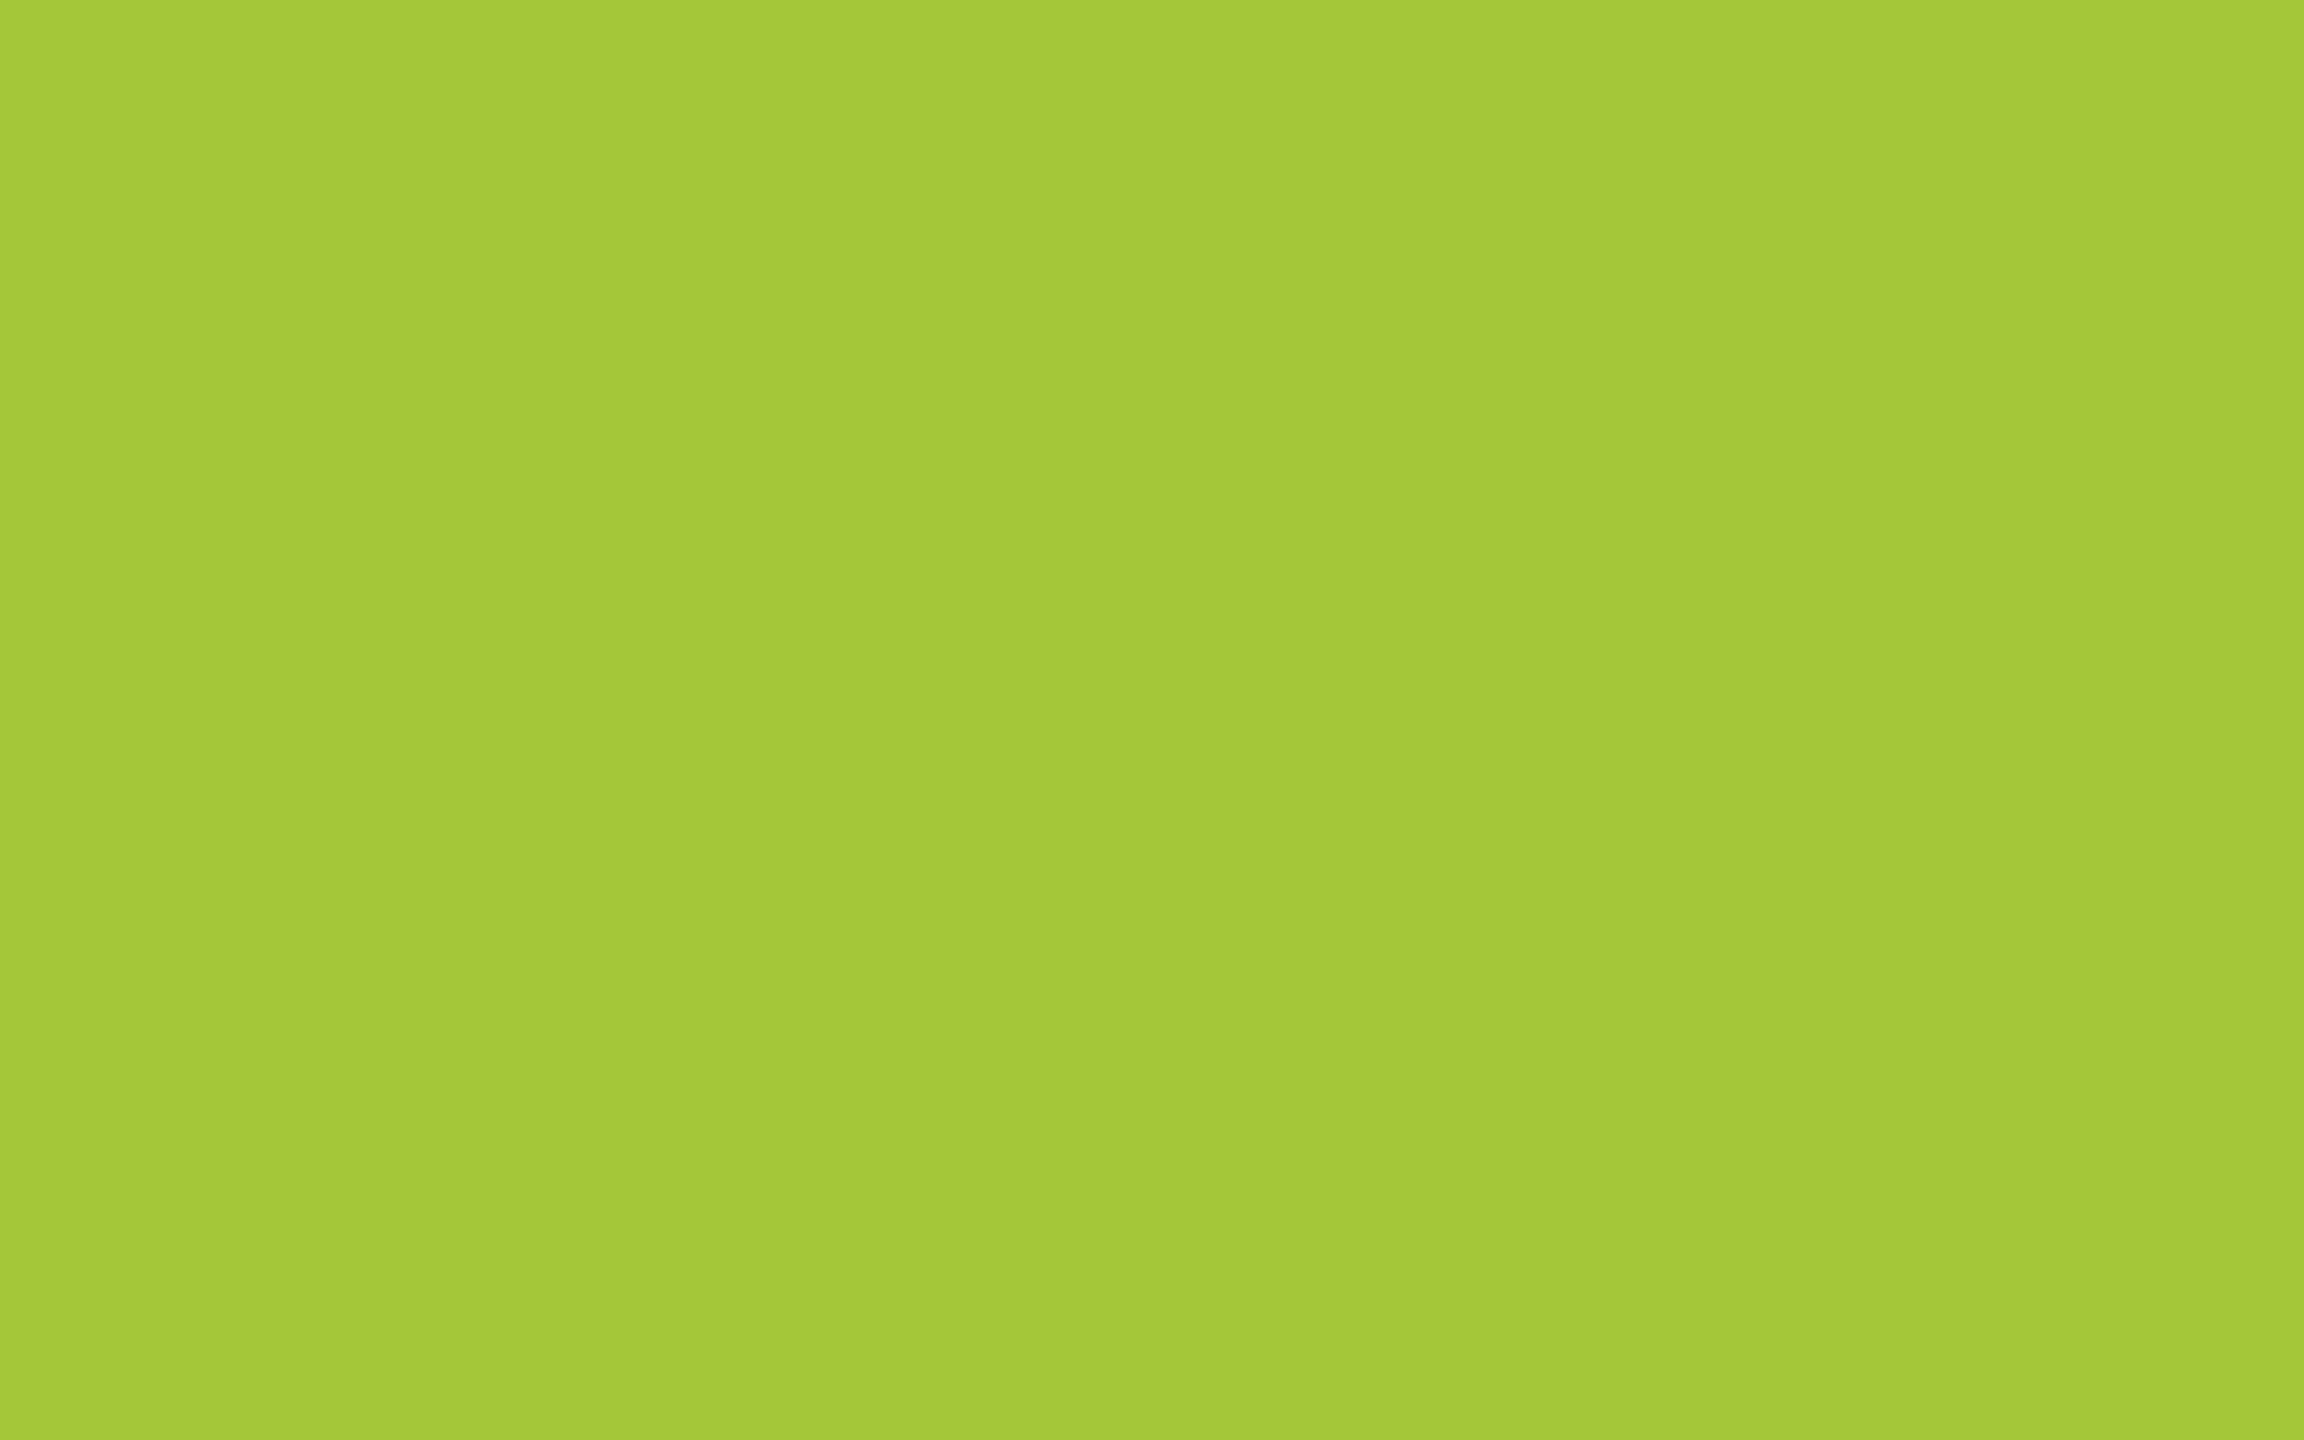 2304x1440 Android Green Solid Color Background